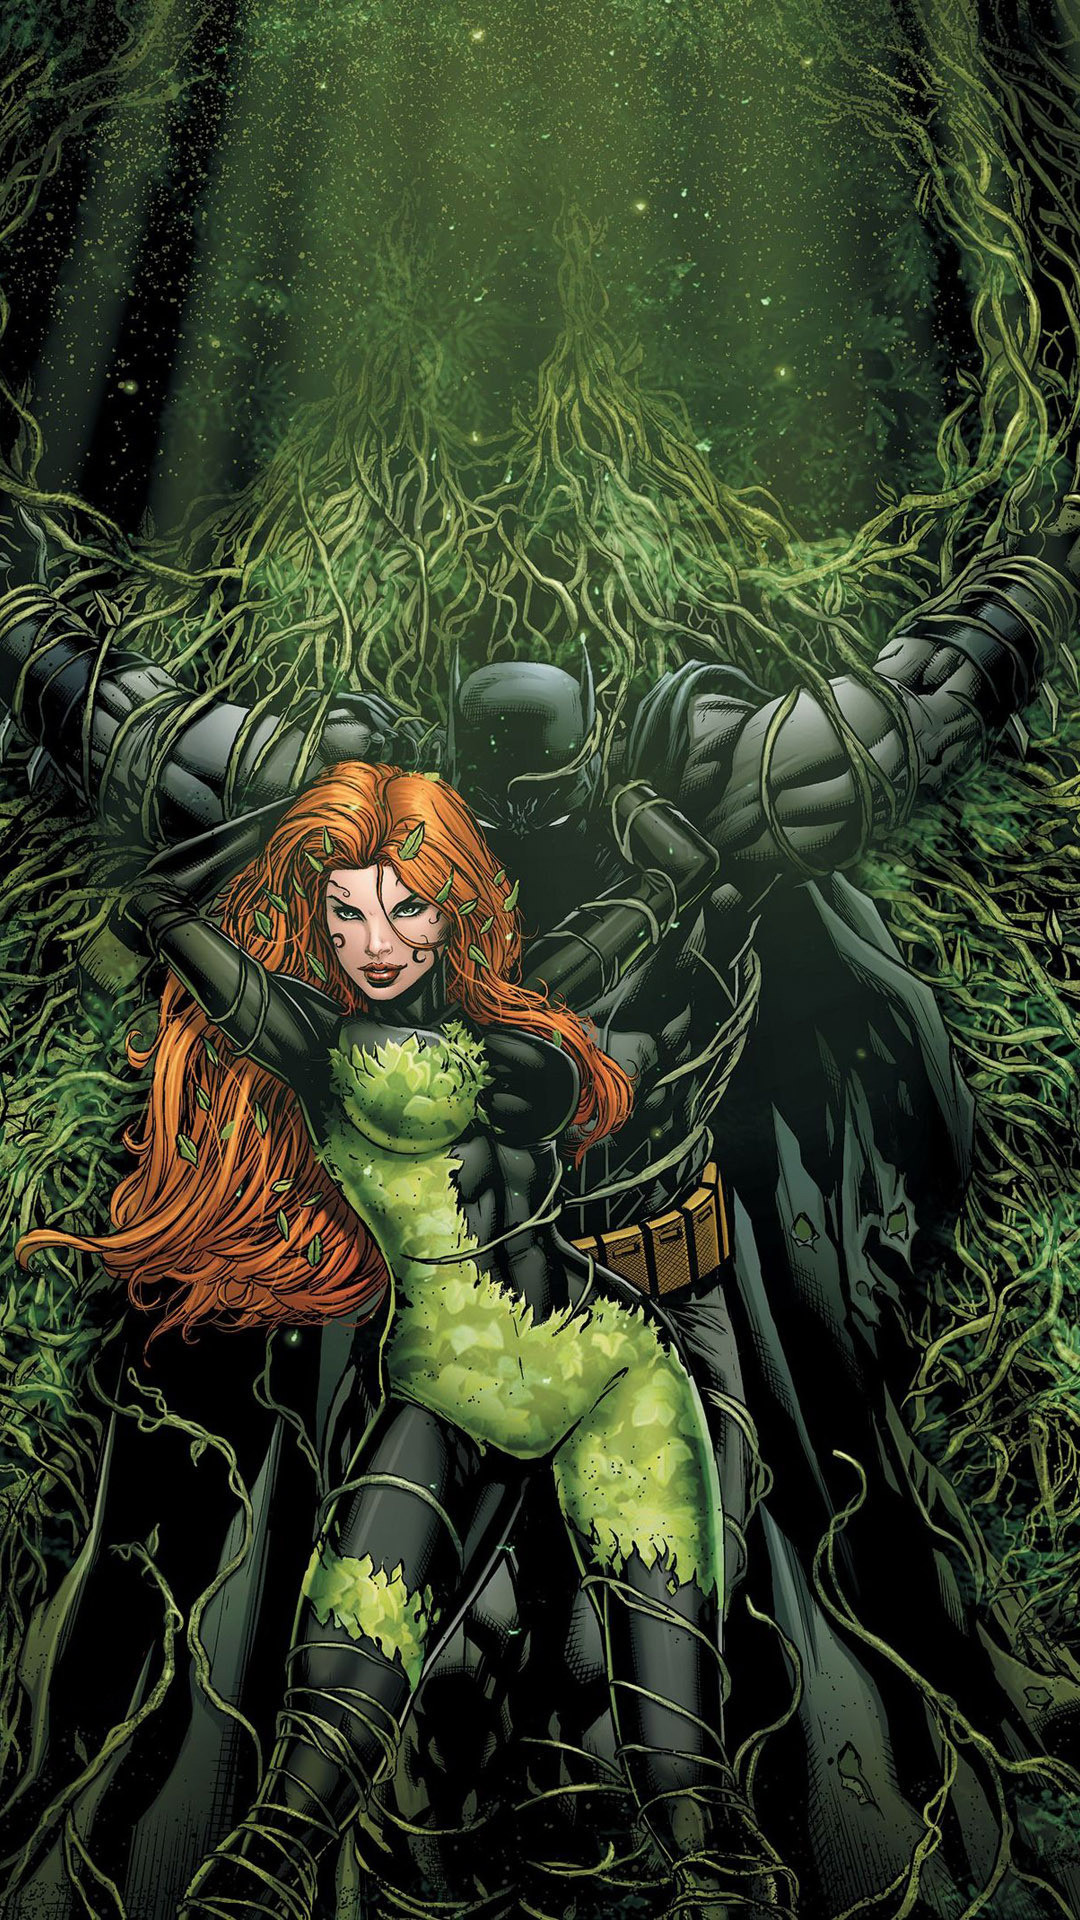 Res: 1080x1920, Batman and Poison Ivy Mobile Wallpaper 8970